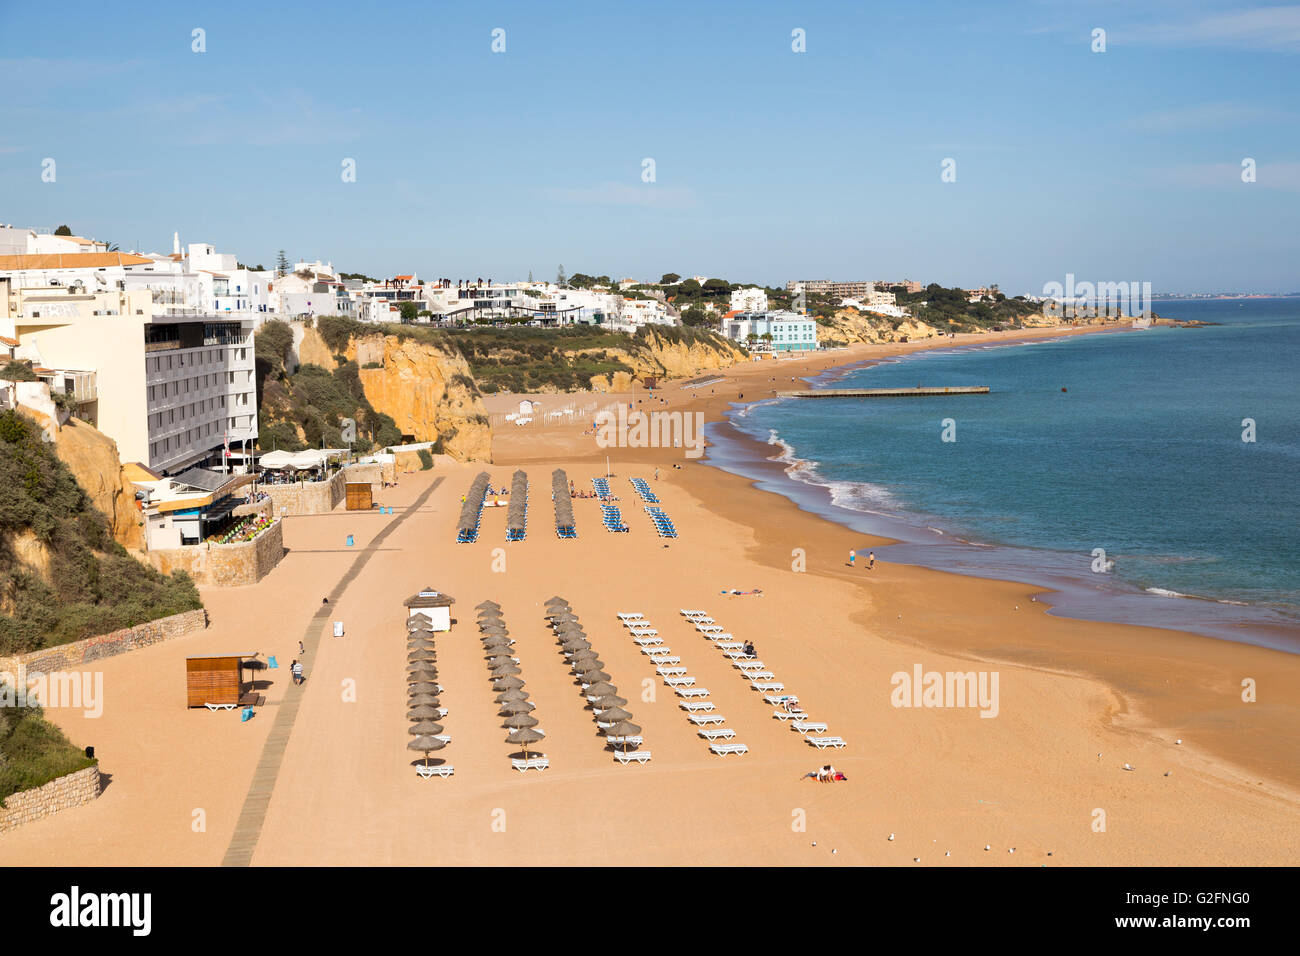 Beach, Albufeira, Algarve, Portugal - Stock Image